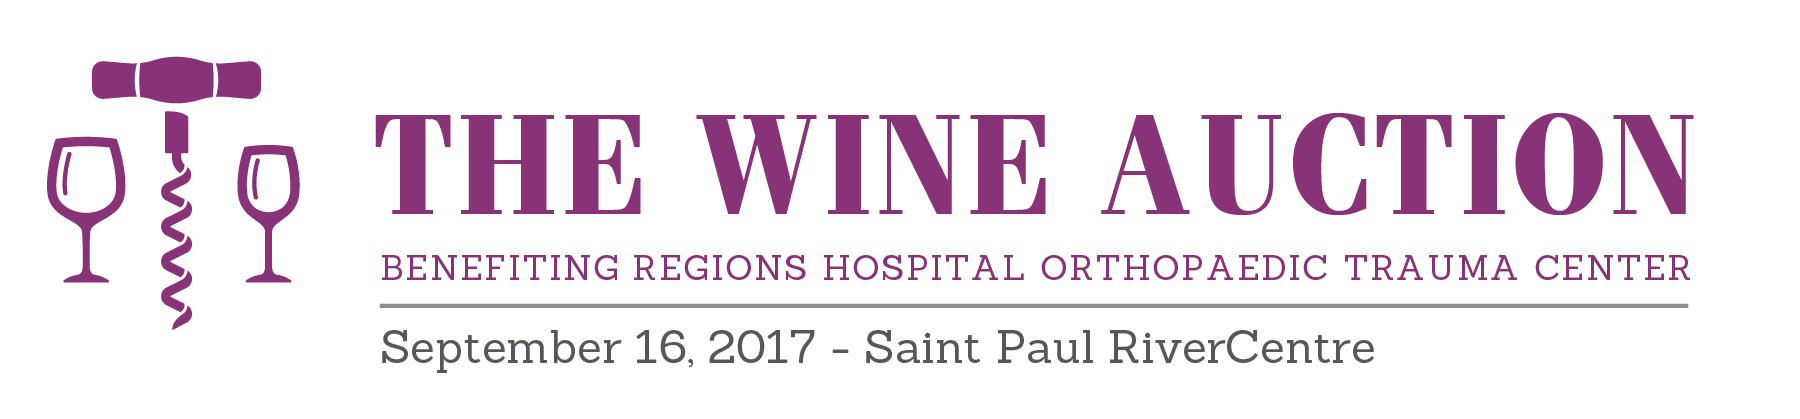 Regions Hospital Foundation - The Wine Auction - Benefiting Regions Hospital Orthopedic Trauma Center - Sept 16, 2017 - St. Paul River Center